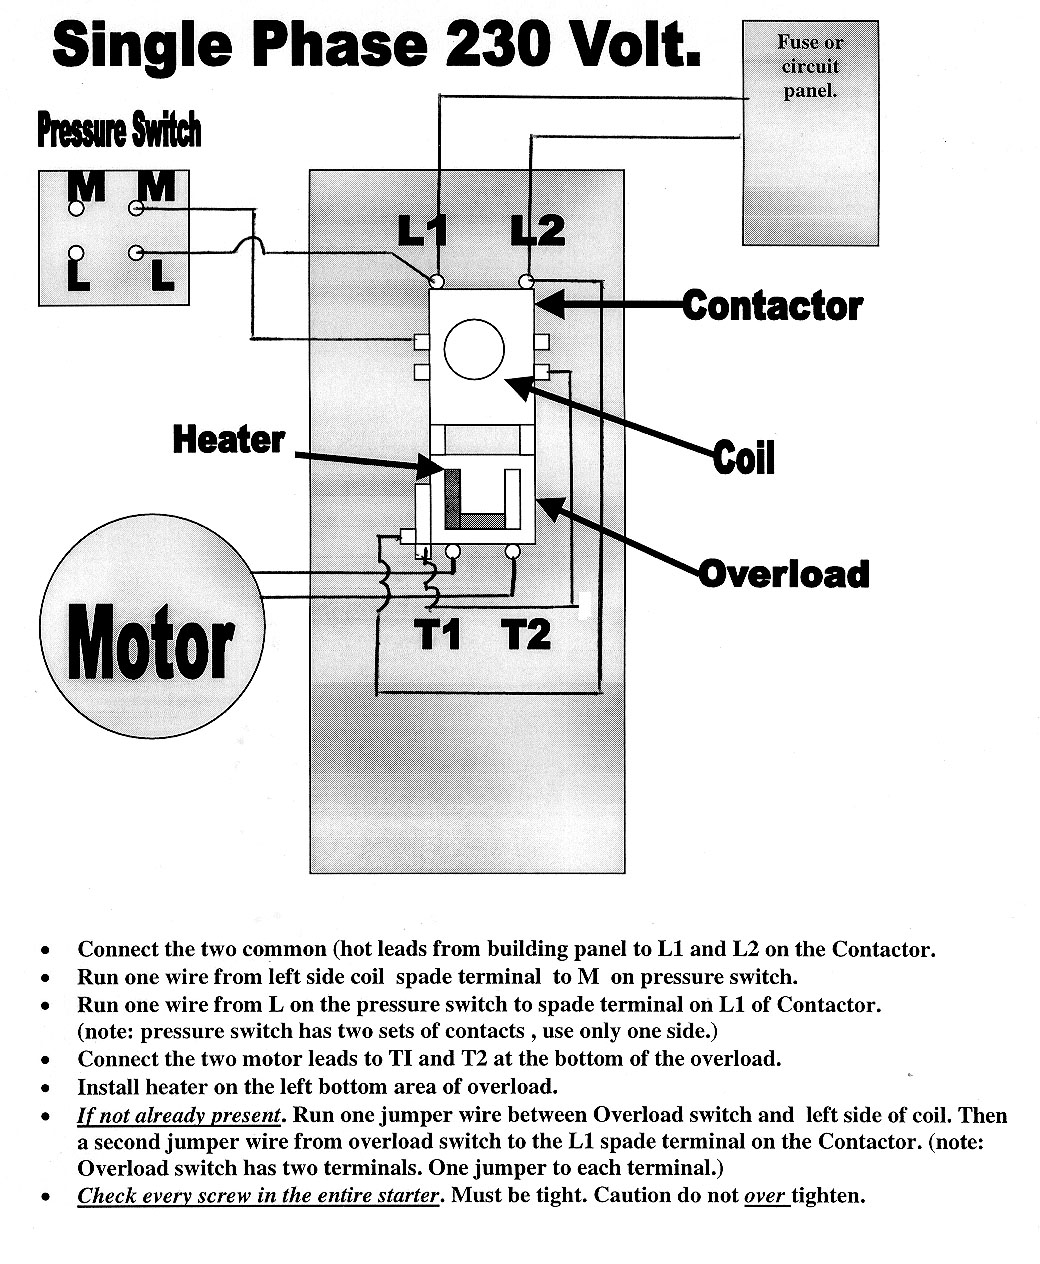 single phase two speed motor wiring diagram 2005 ford f150 stock radio marathon gallery